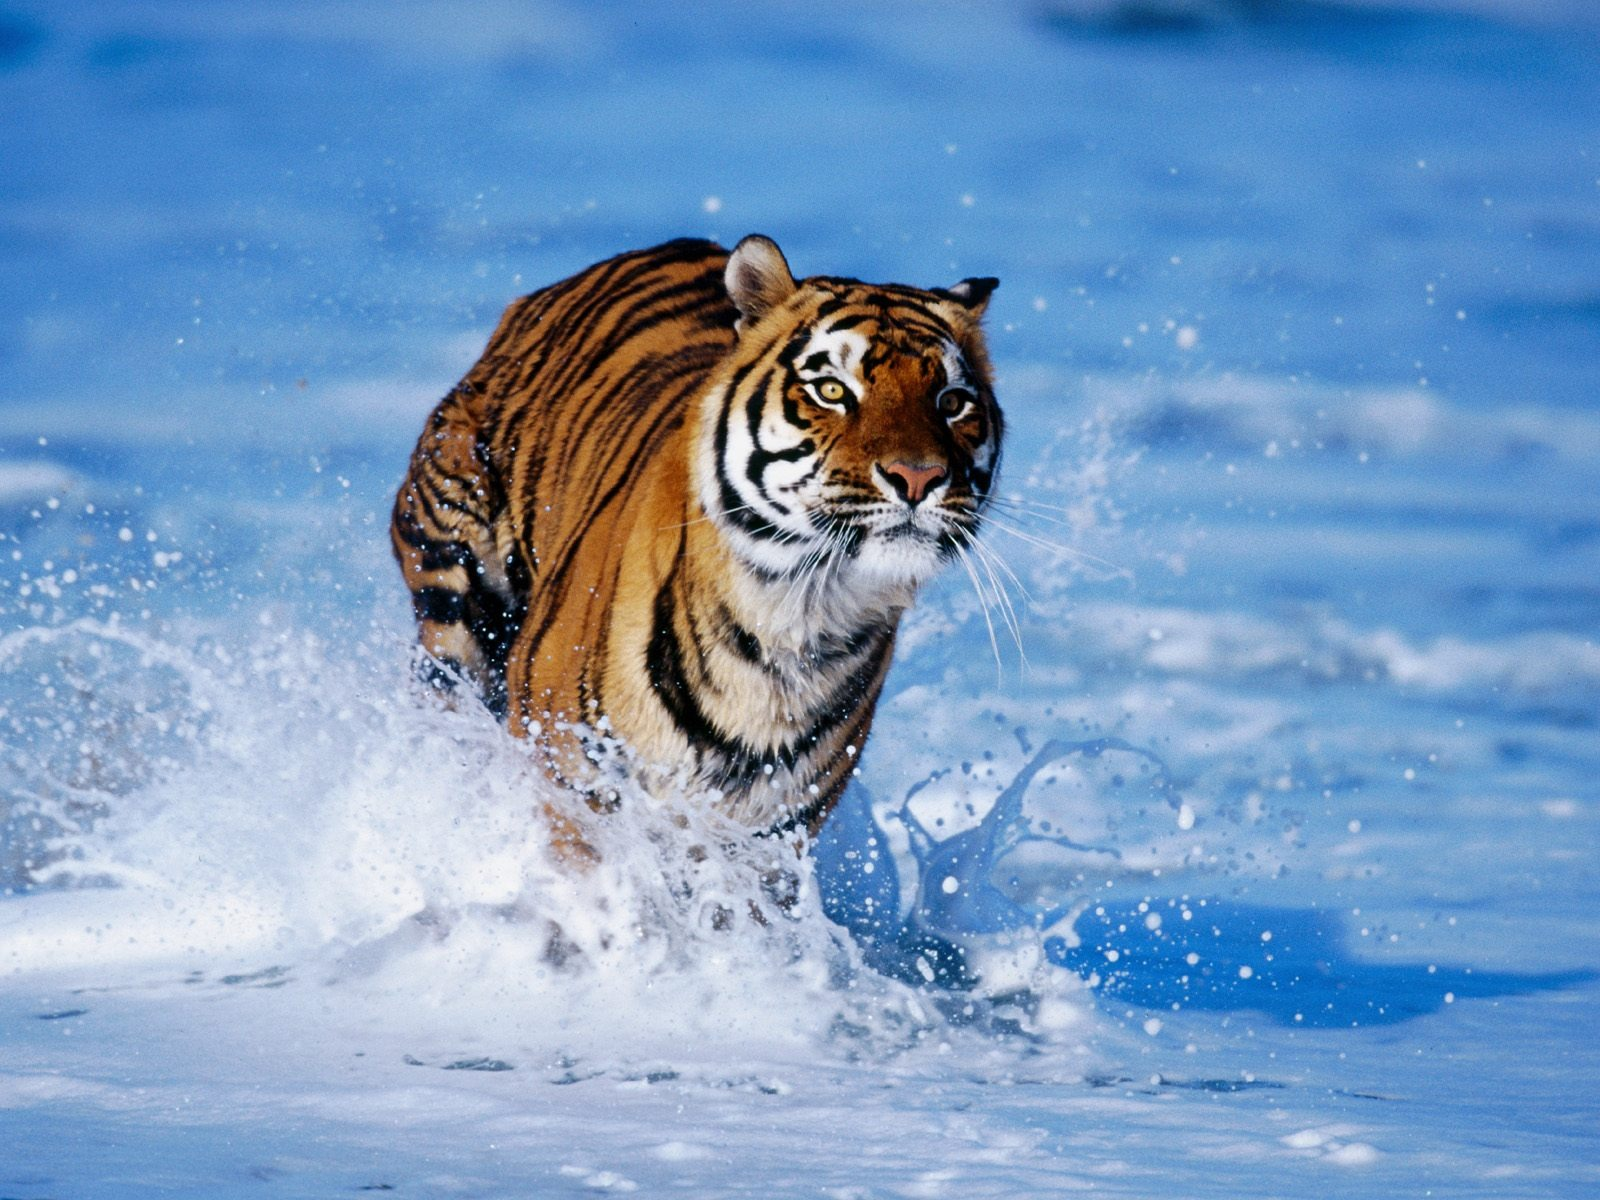 Bengal Tiger Wallpaper Tigers Animals Wallpapers